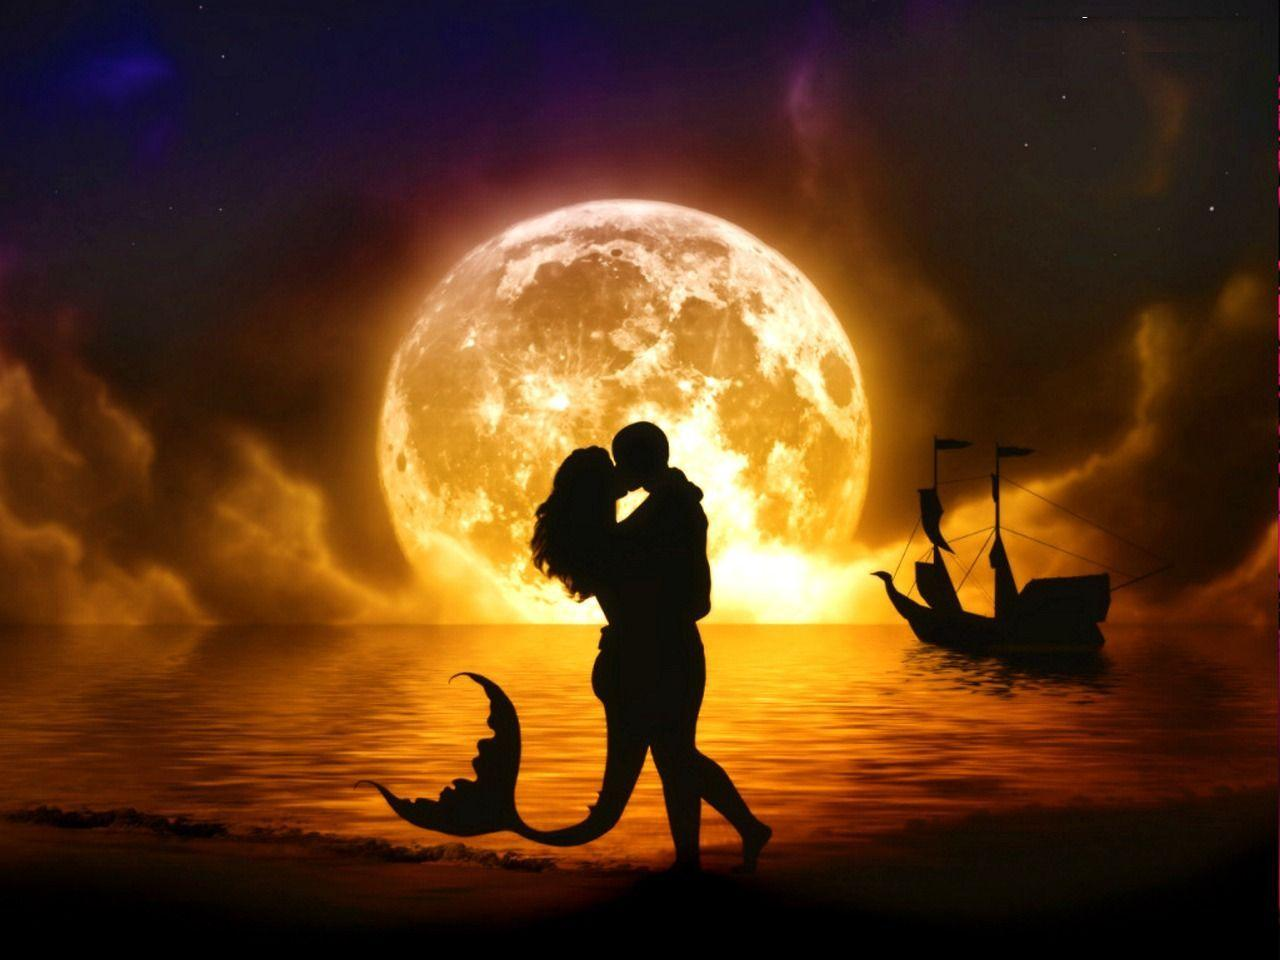 Love Wallpapers Of Kiss : Love Kiss Pictures Wallpapers - Wallpaper cave